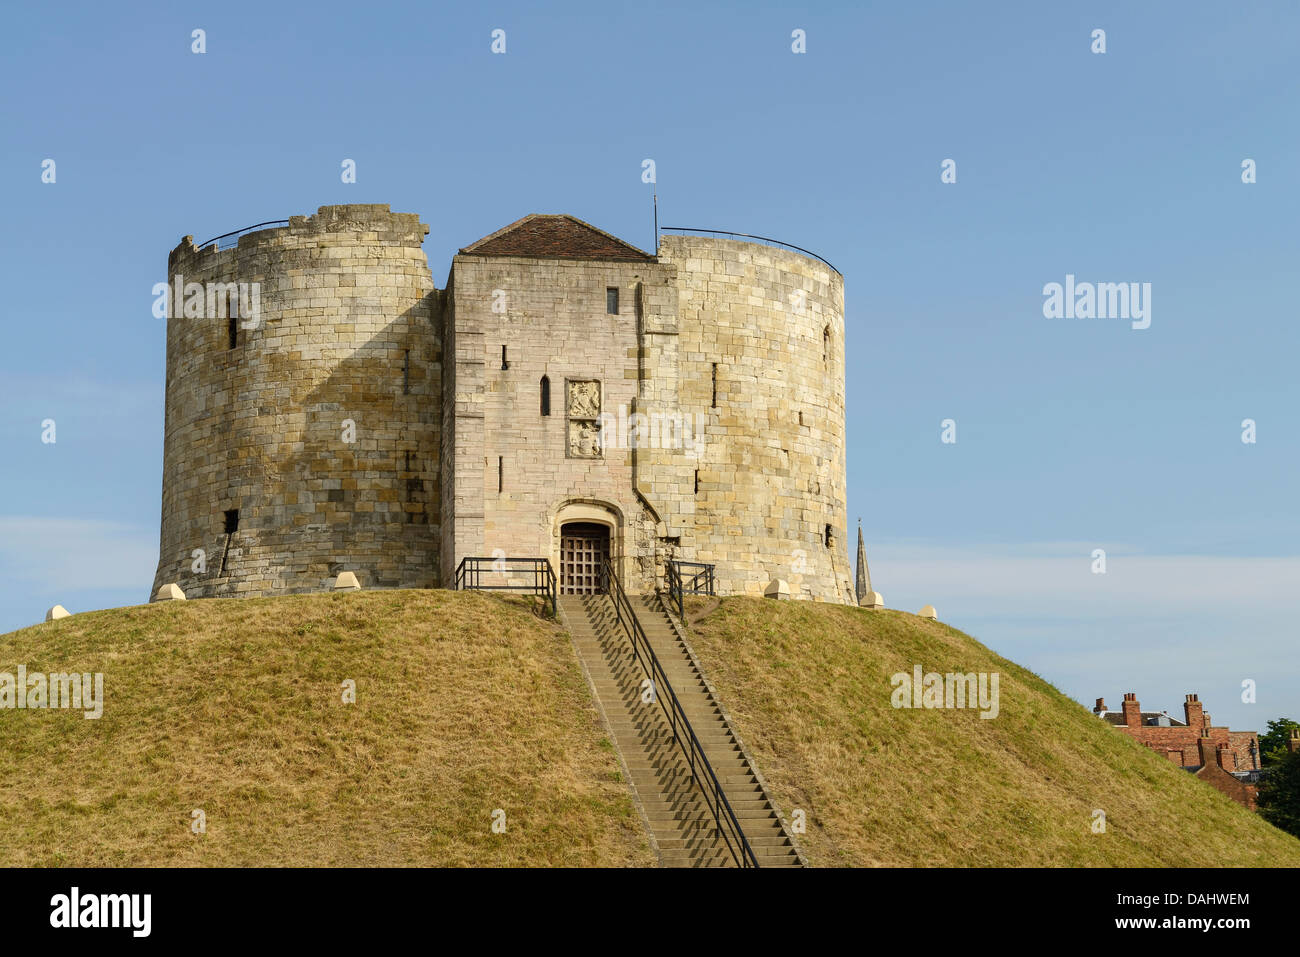 Cliffords Tower York city centre UK - Stock Image